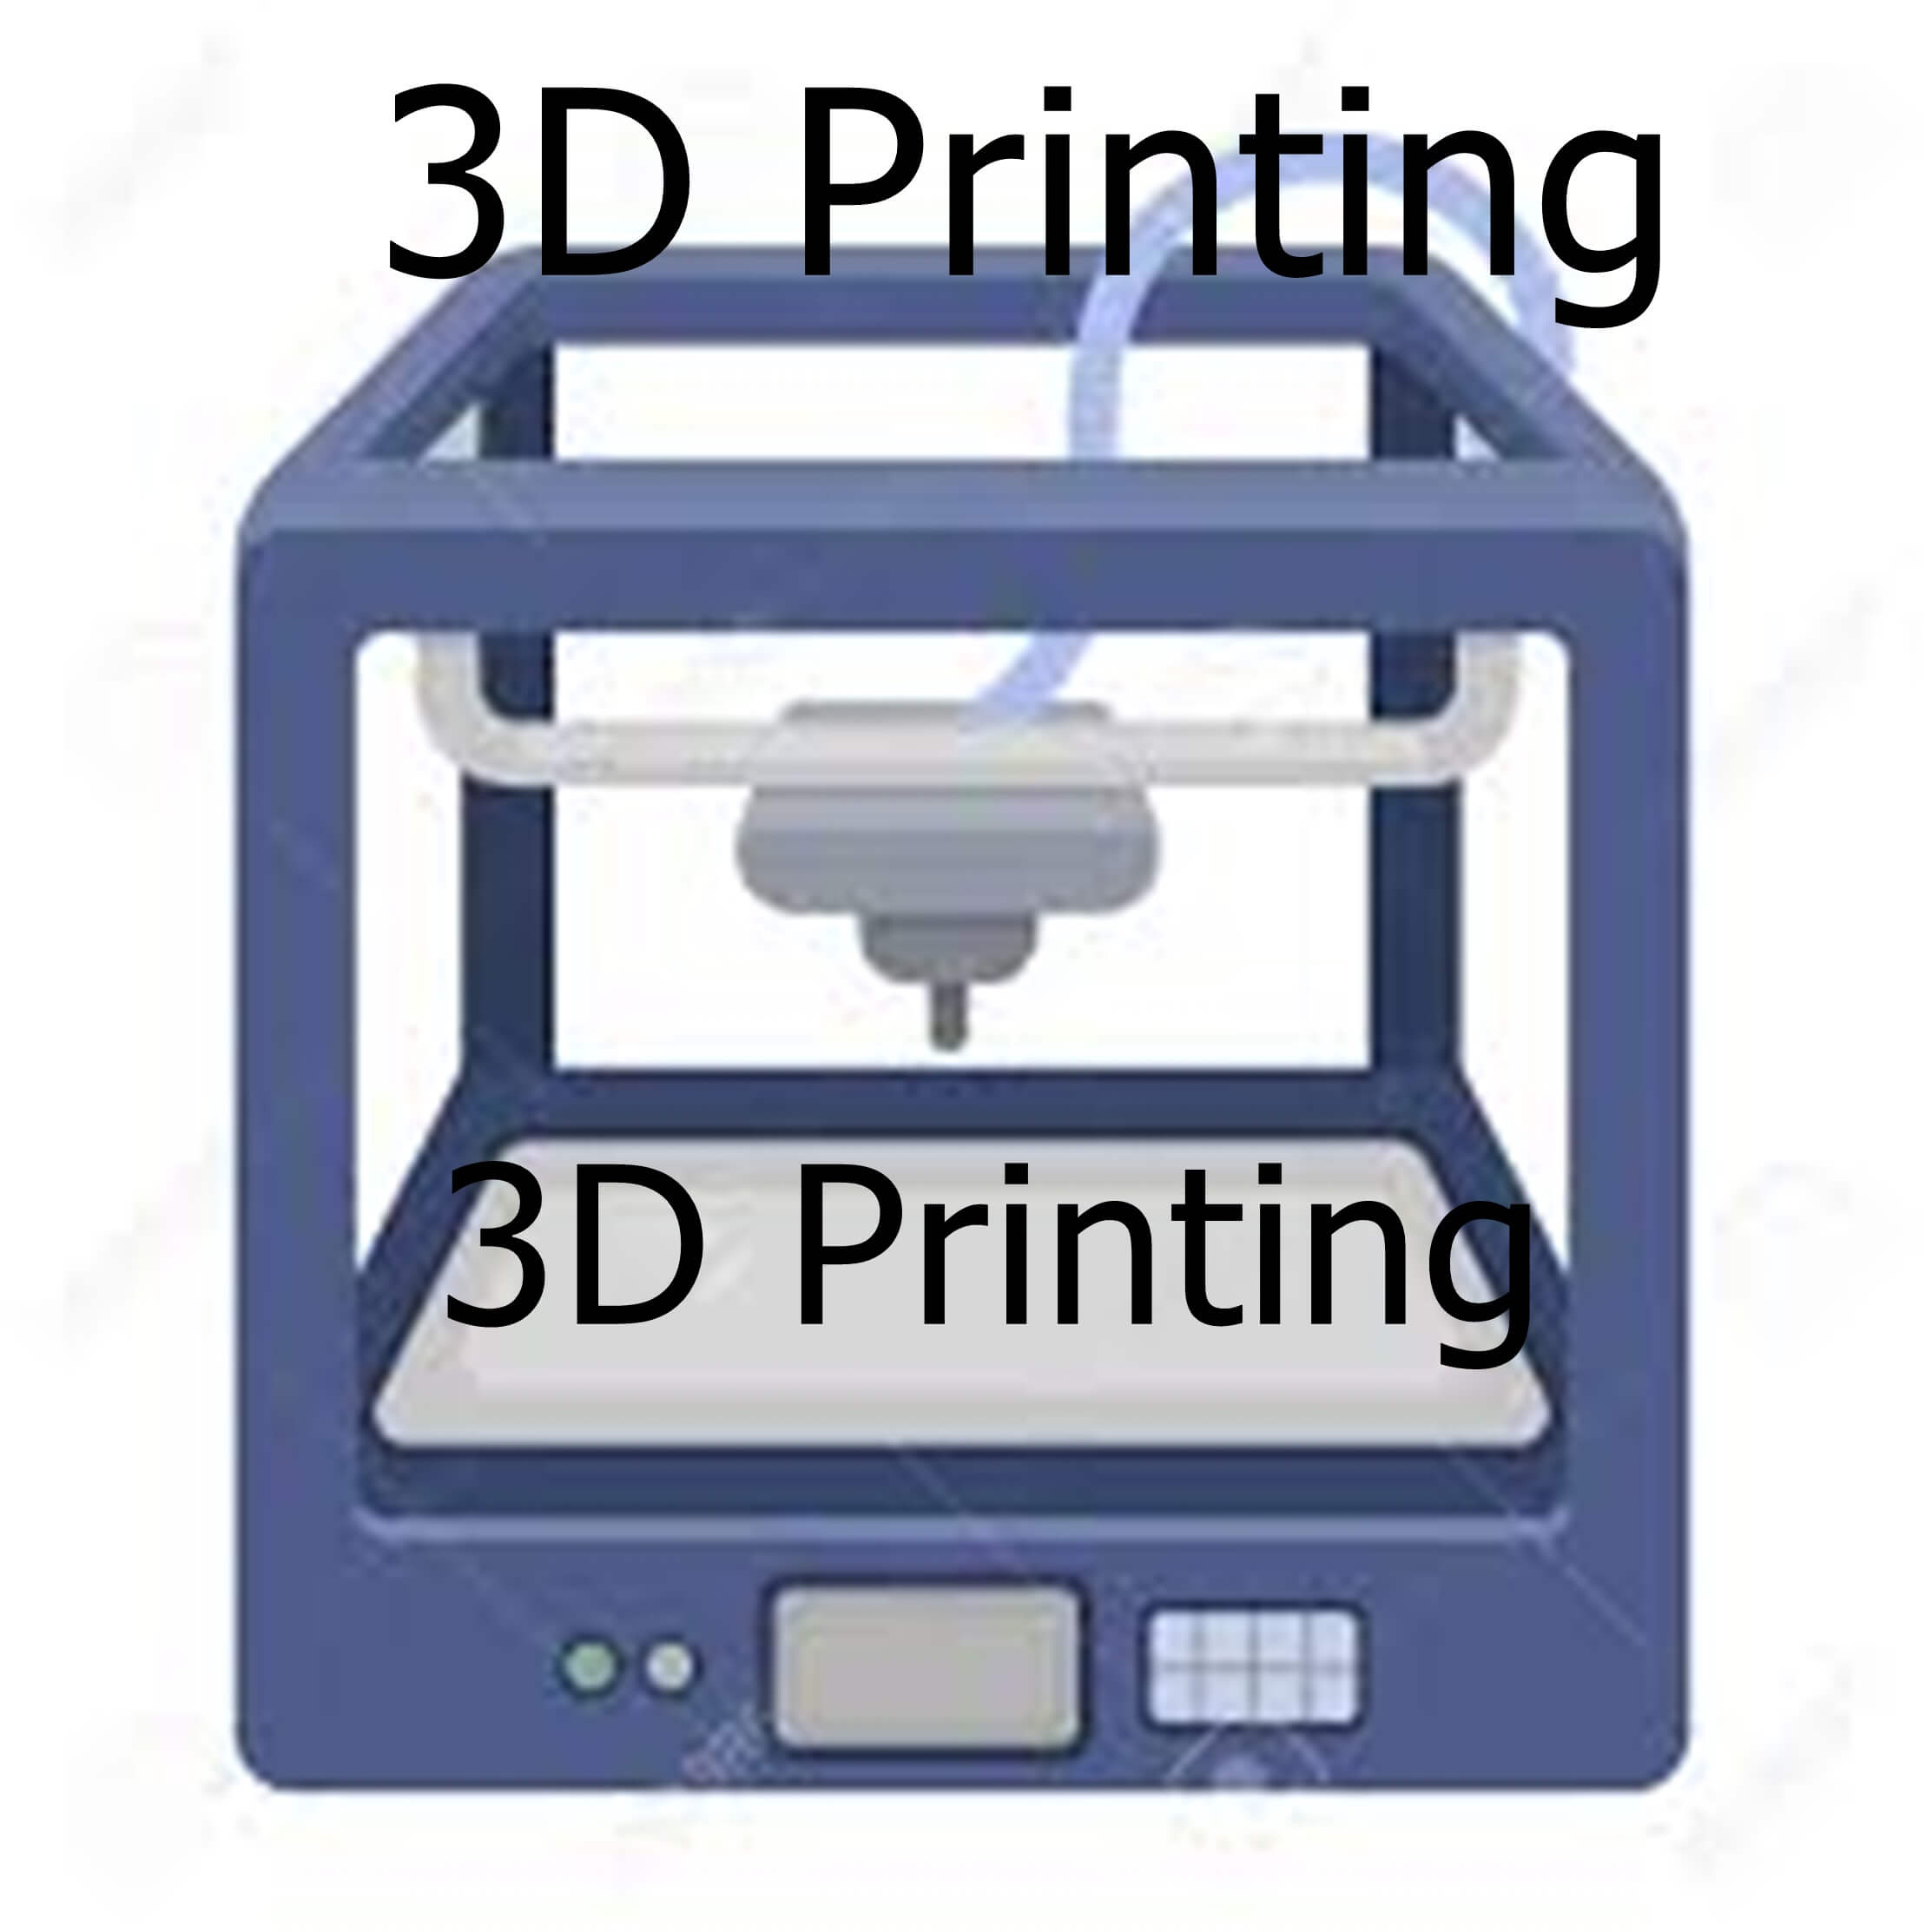 Profitable and niche 3d printing business takeover | For Sale | Look For Buyer - Business for Sale, Buy a Ready Business